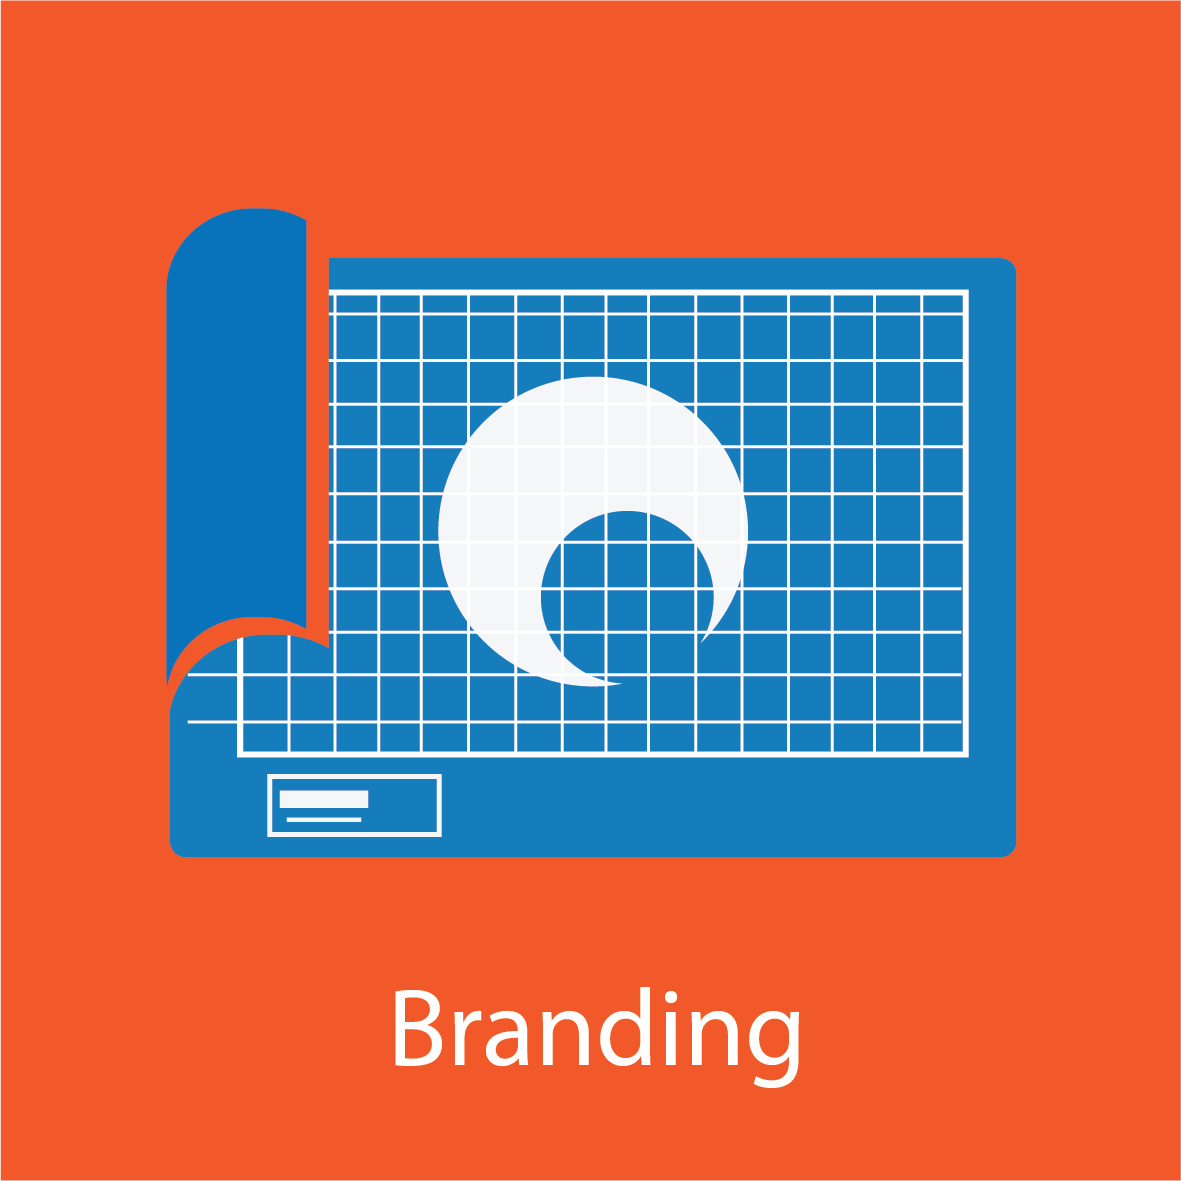 Blueprint graphic for Branding